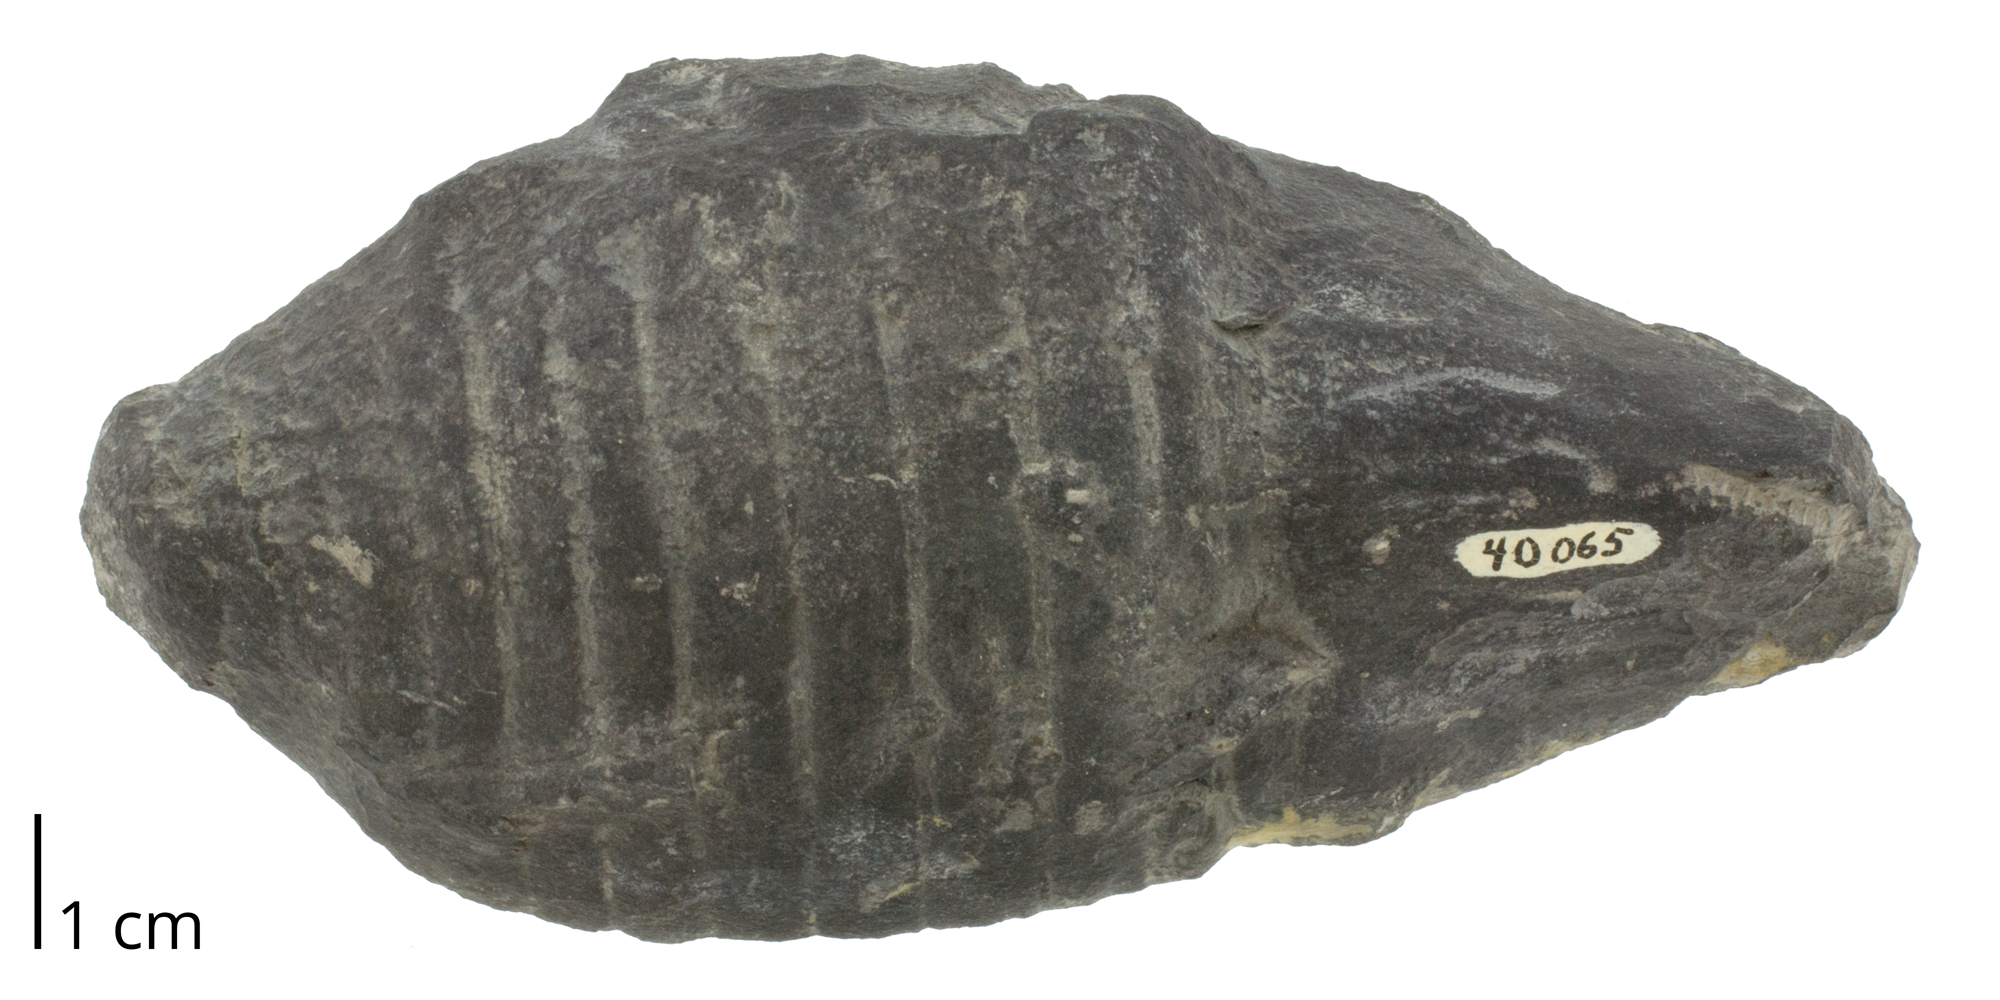 Fossil cephalopod Acleistoceras fischeri from the Devonian Cherry Valley Limestone of Otsego County, New York. The shell of this species is a brevicone.